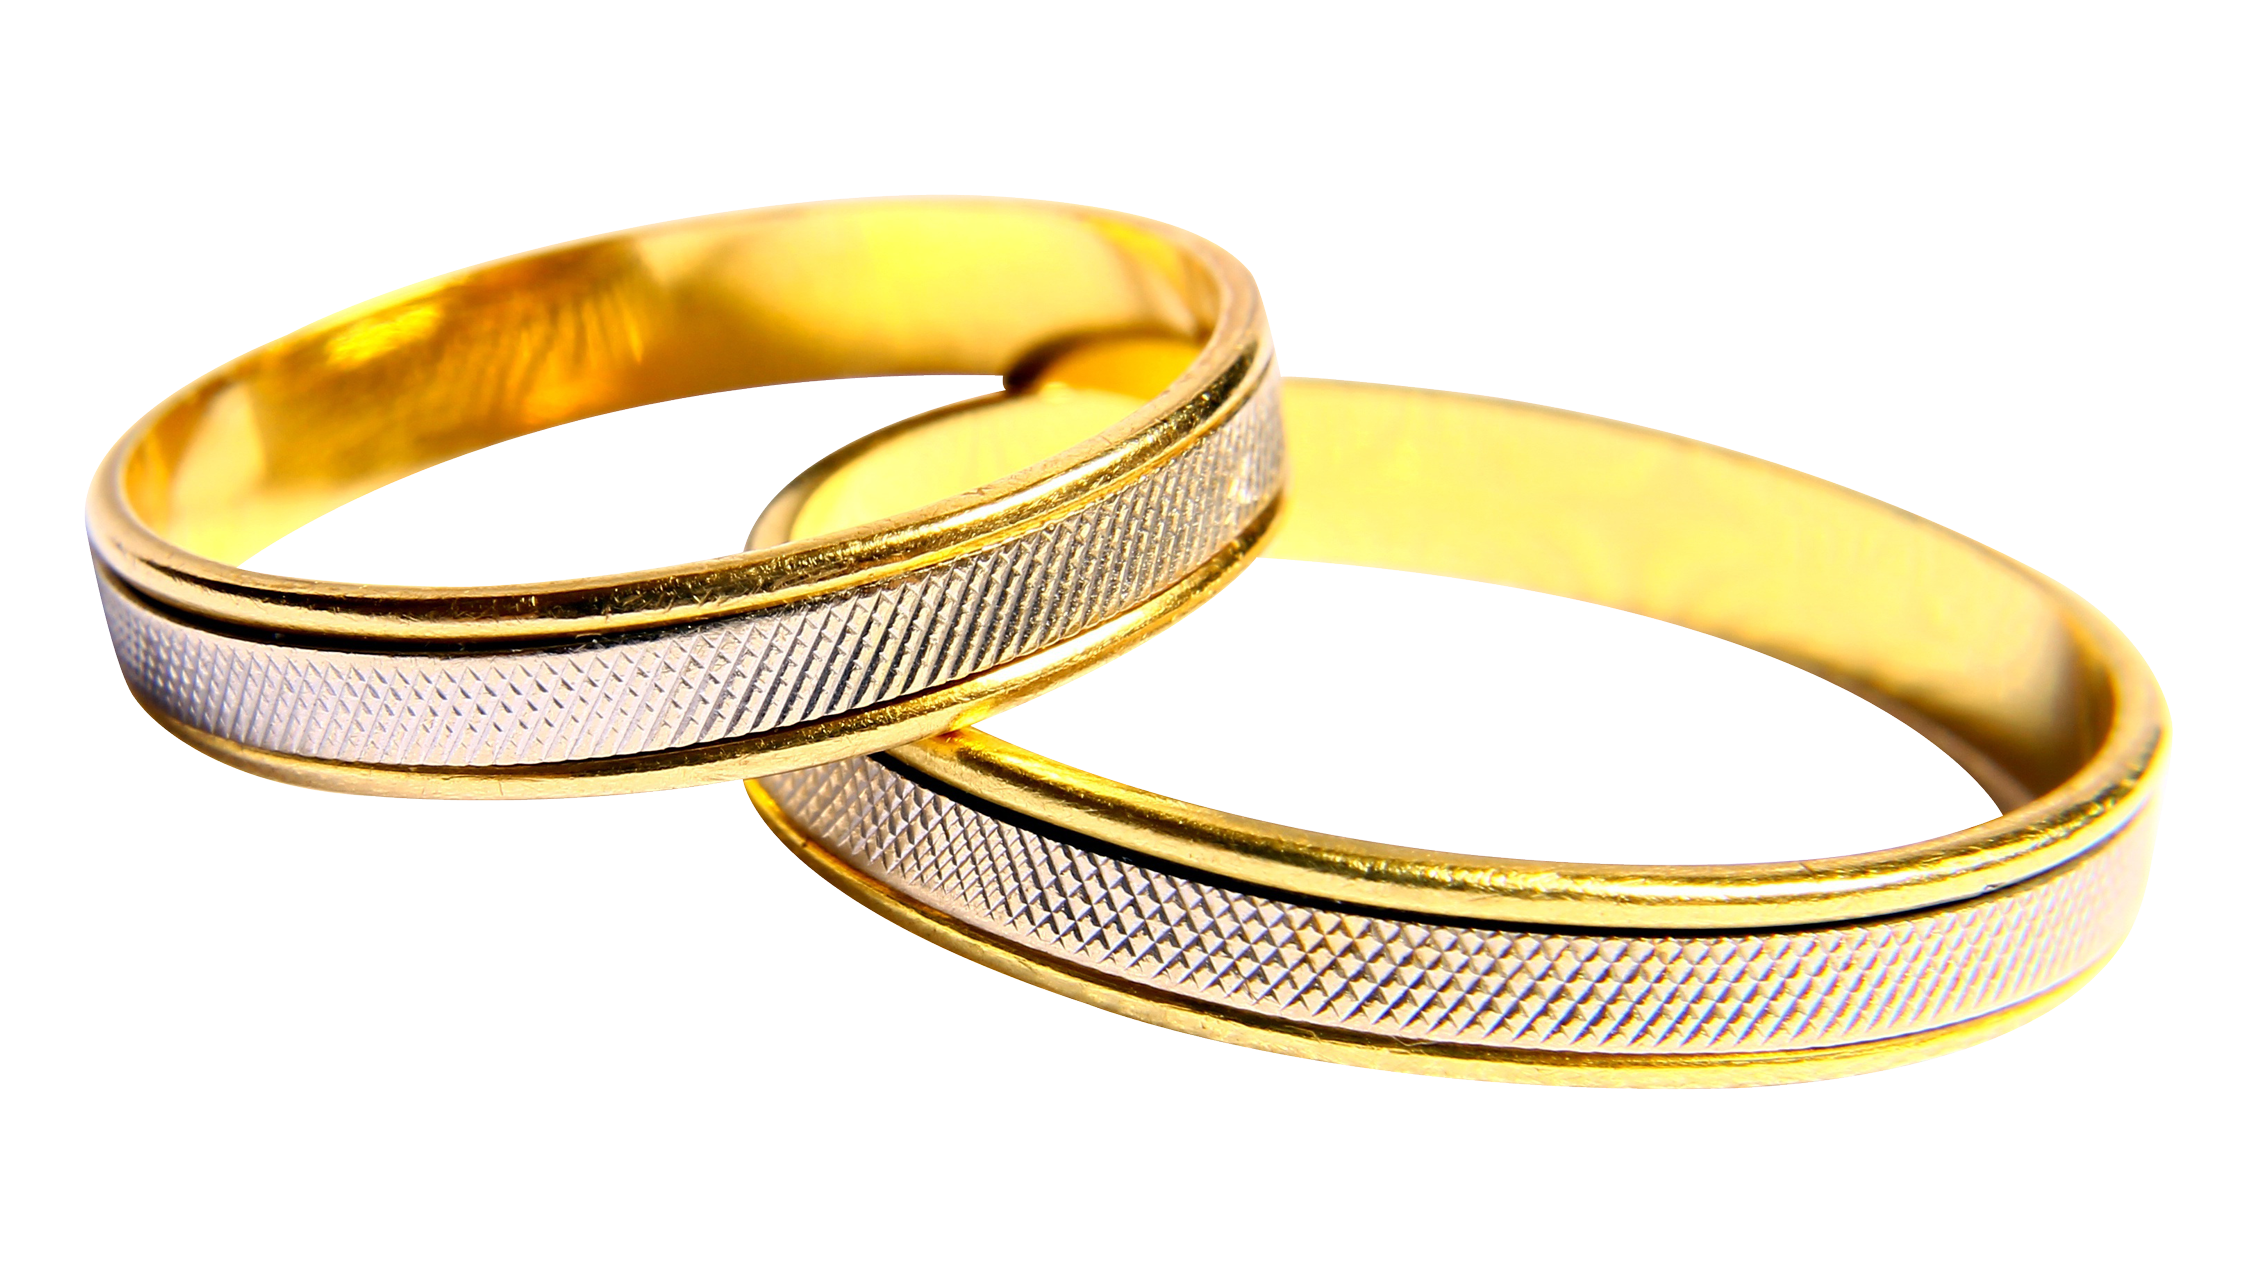 Download Wedding Rings PNG Image for Free Wedding ring